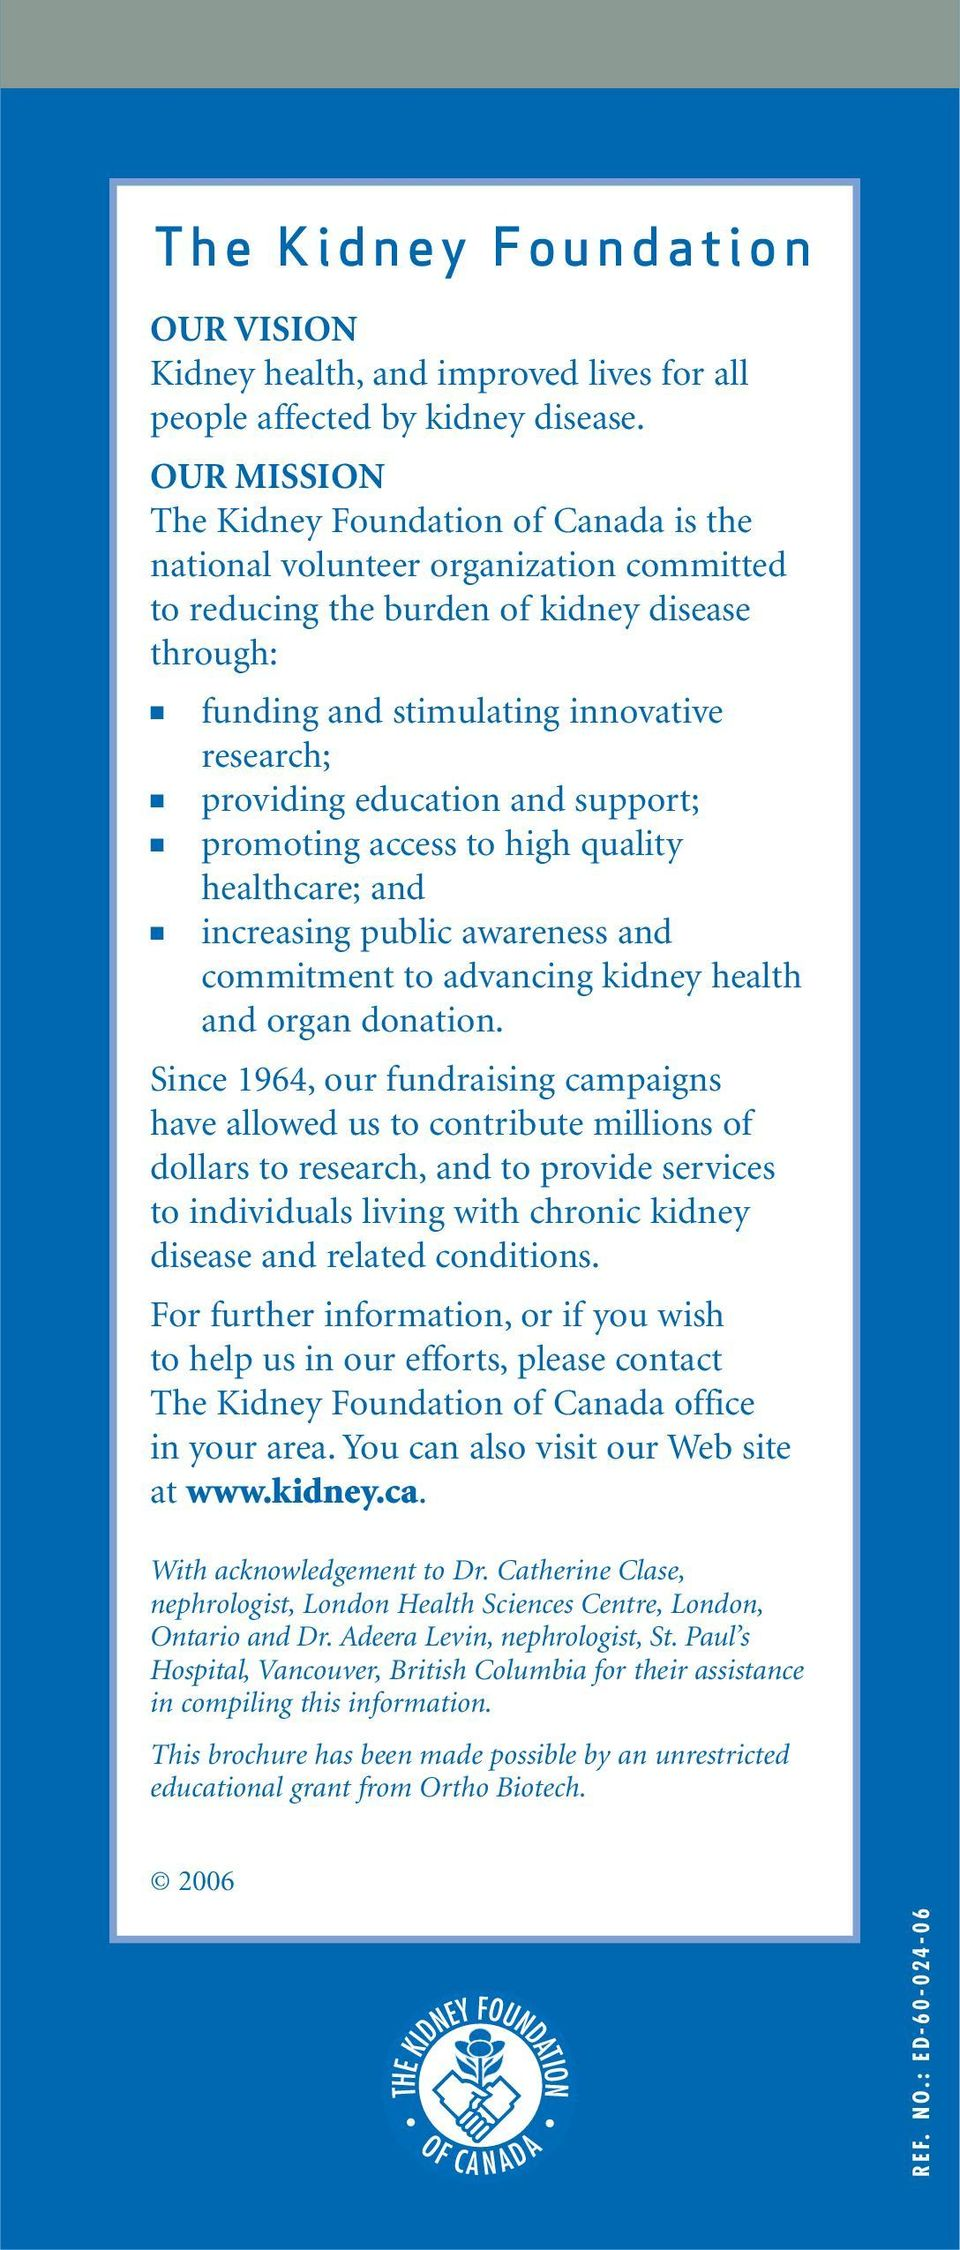 education and support; promoting access to high quality healthcare; and increasing public awareness and commitment to advancing kidney health and organ donation.